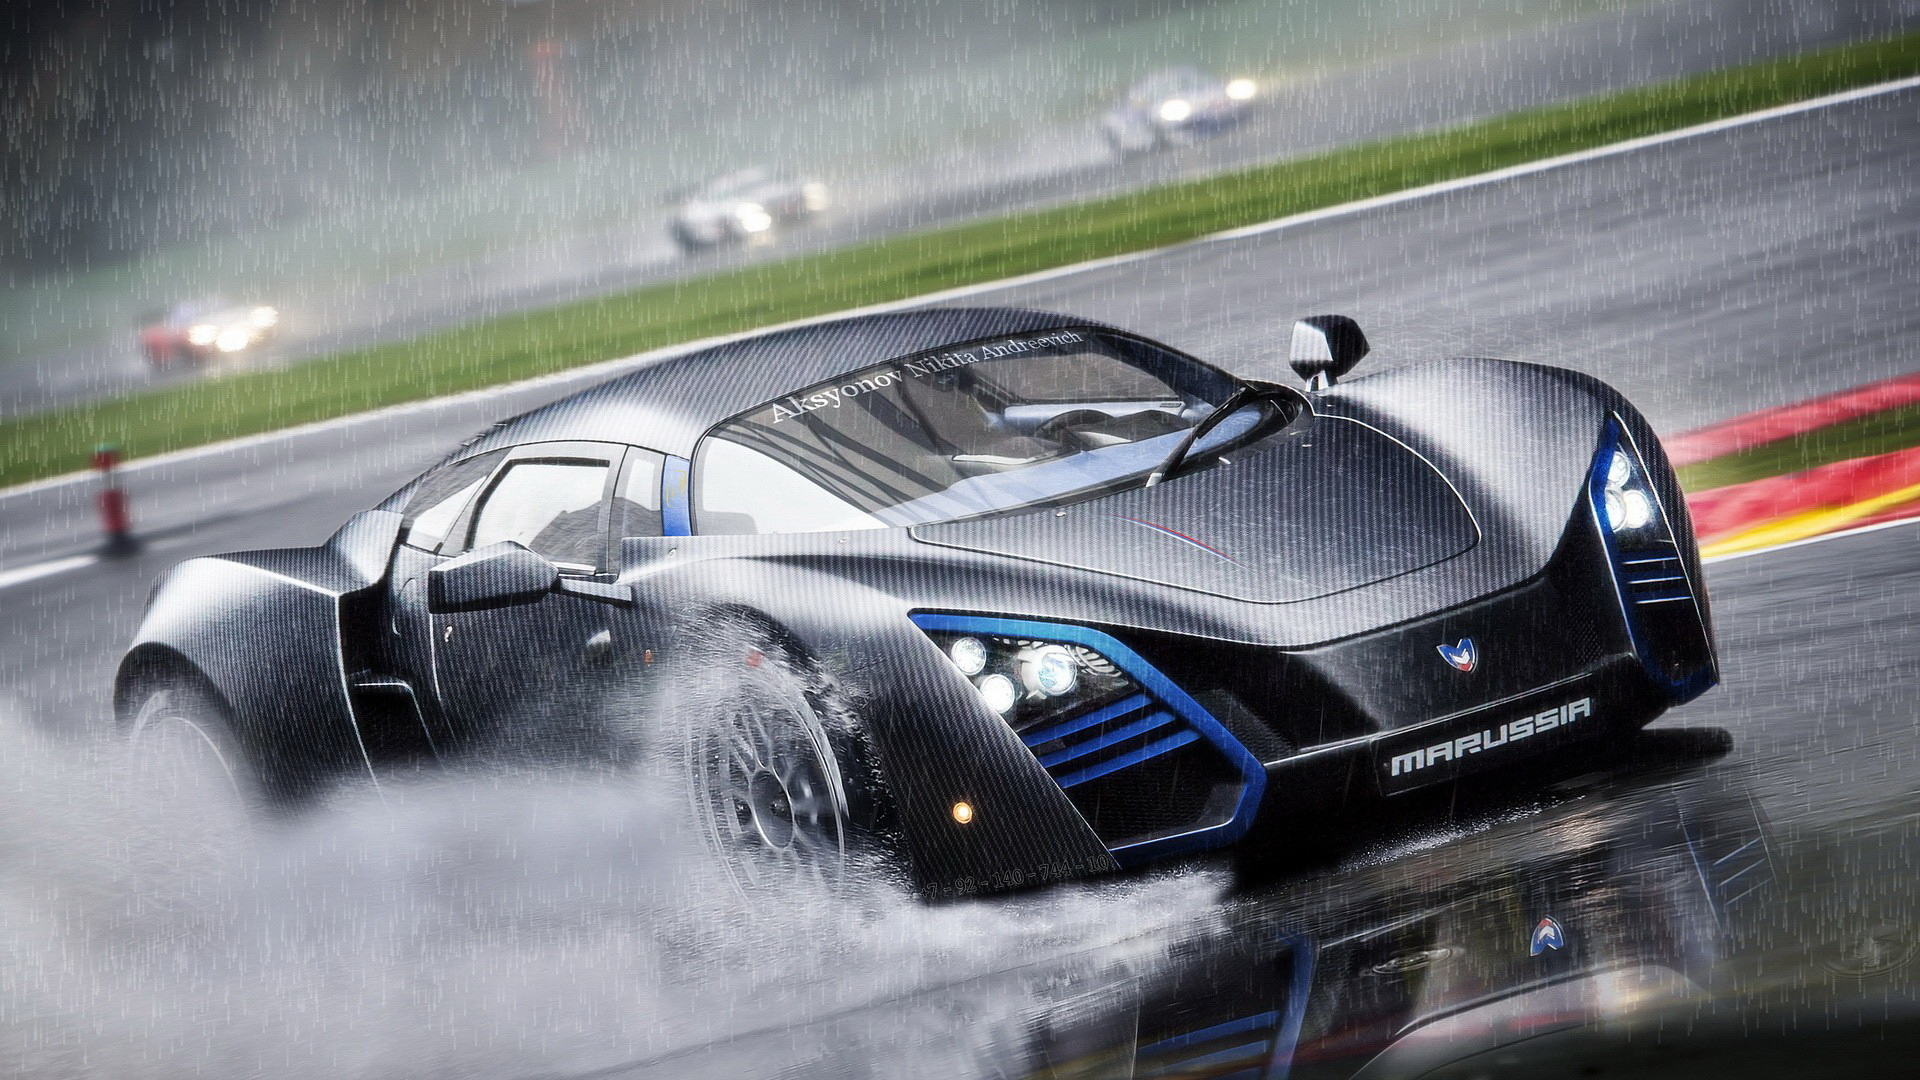 4 Marussia B2 HD Wallpapers | Background Images ...